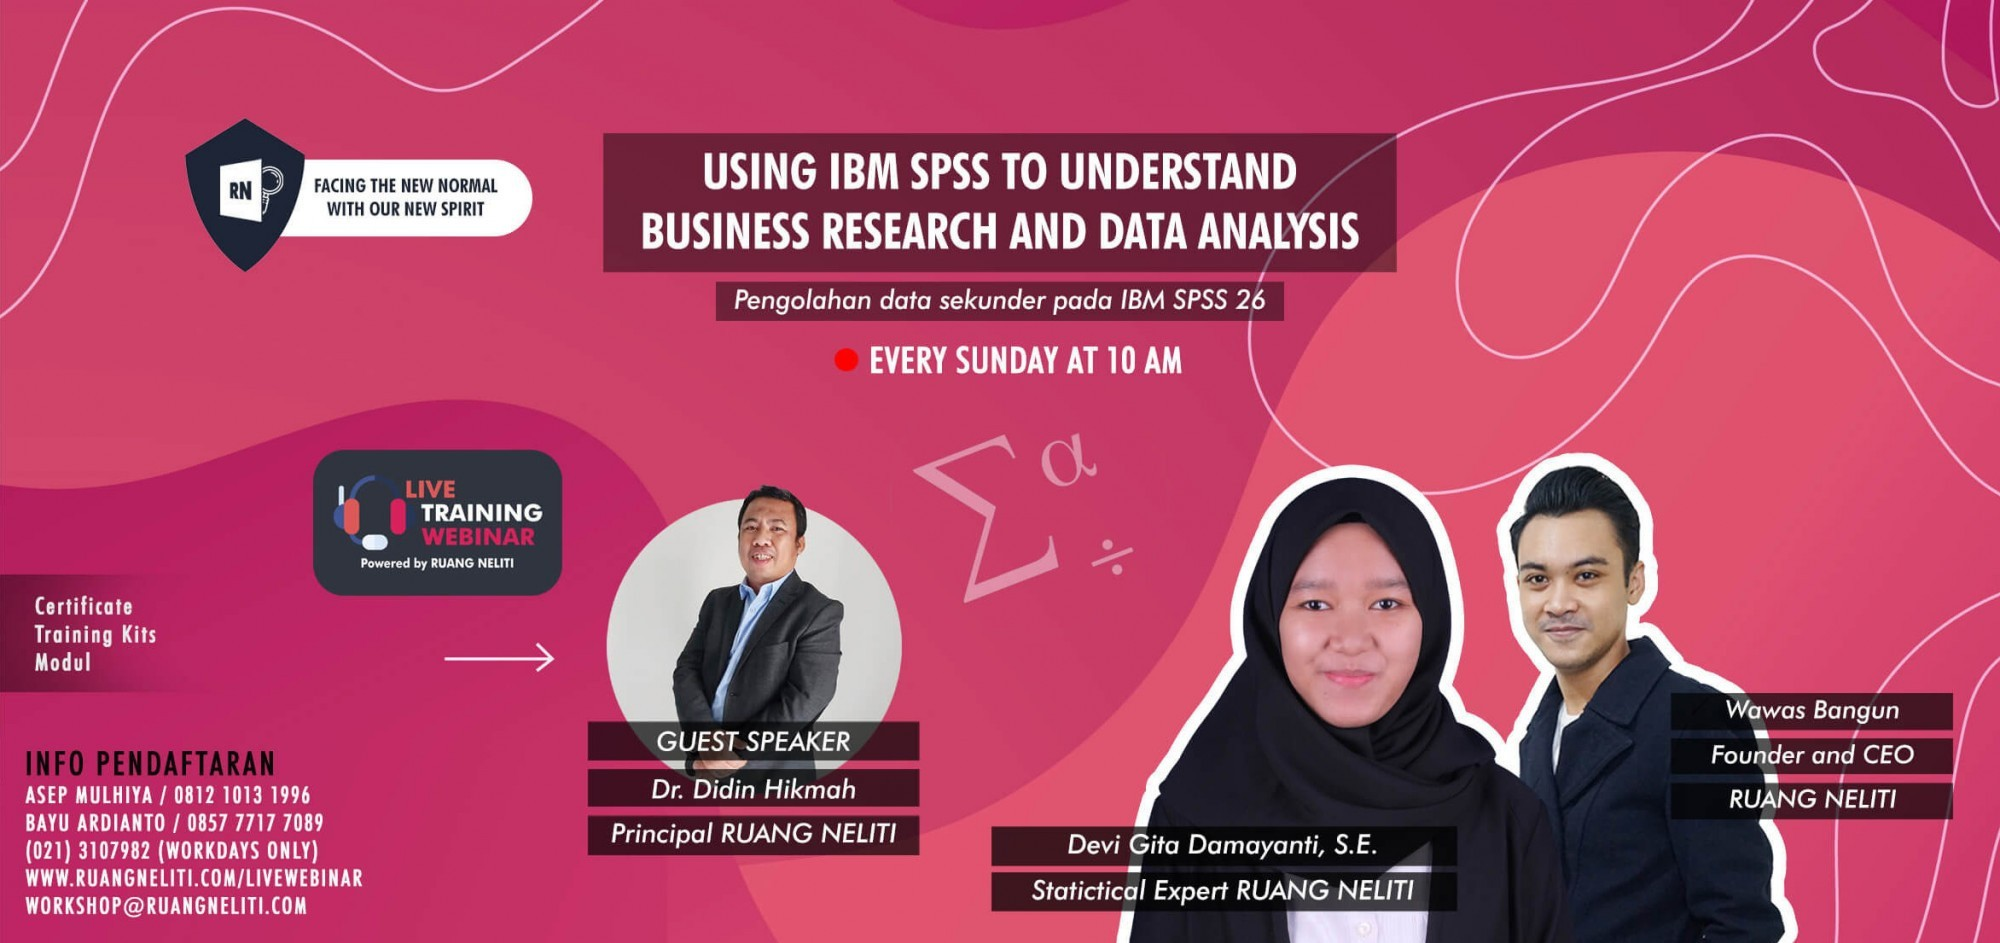 LIVE WEBINAR : USING IBM SPSS TO UNDERSTAND BUSINESS RESEARCH AND DATA ANALYSIS (DATA SEKUNDER)